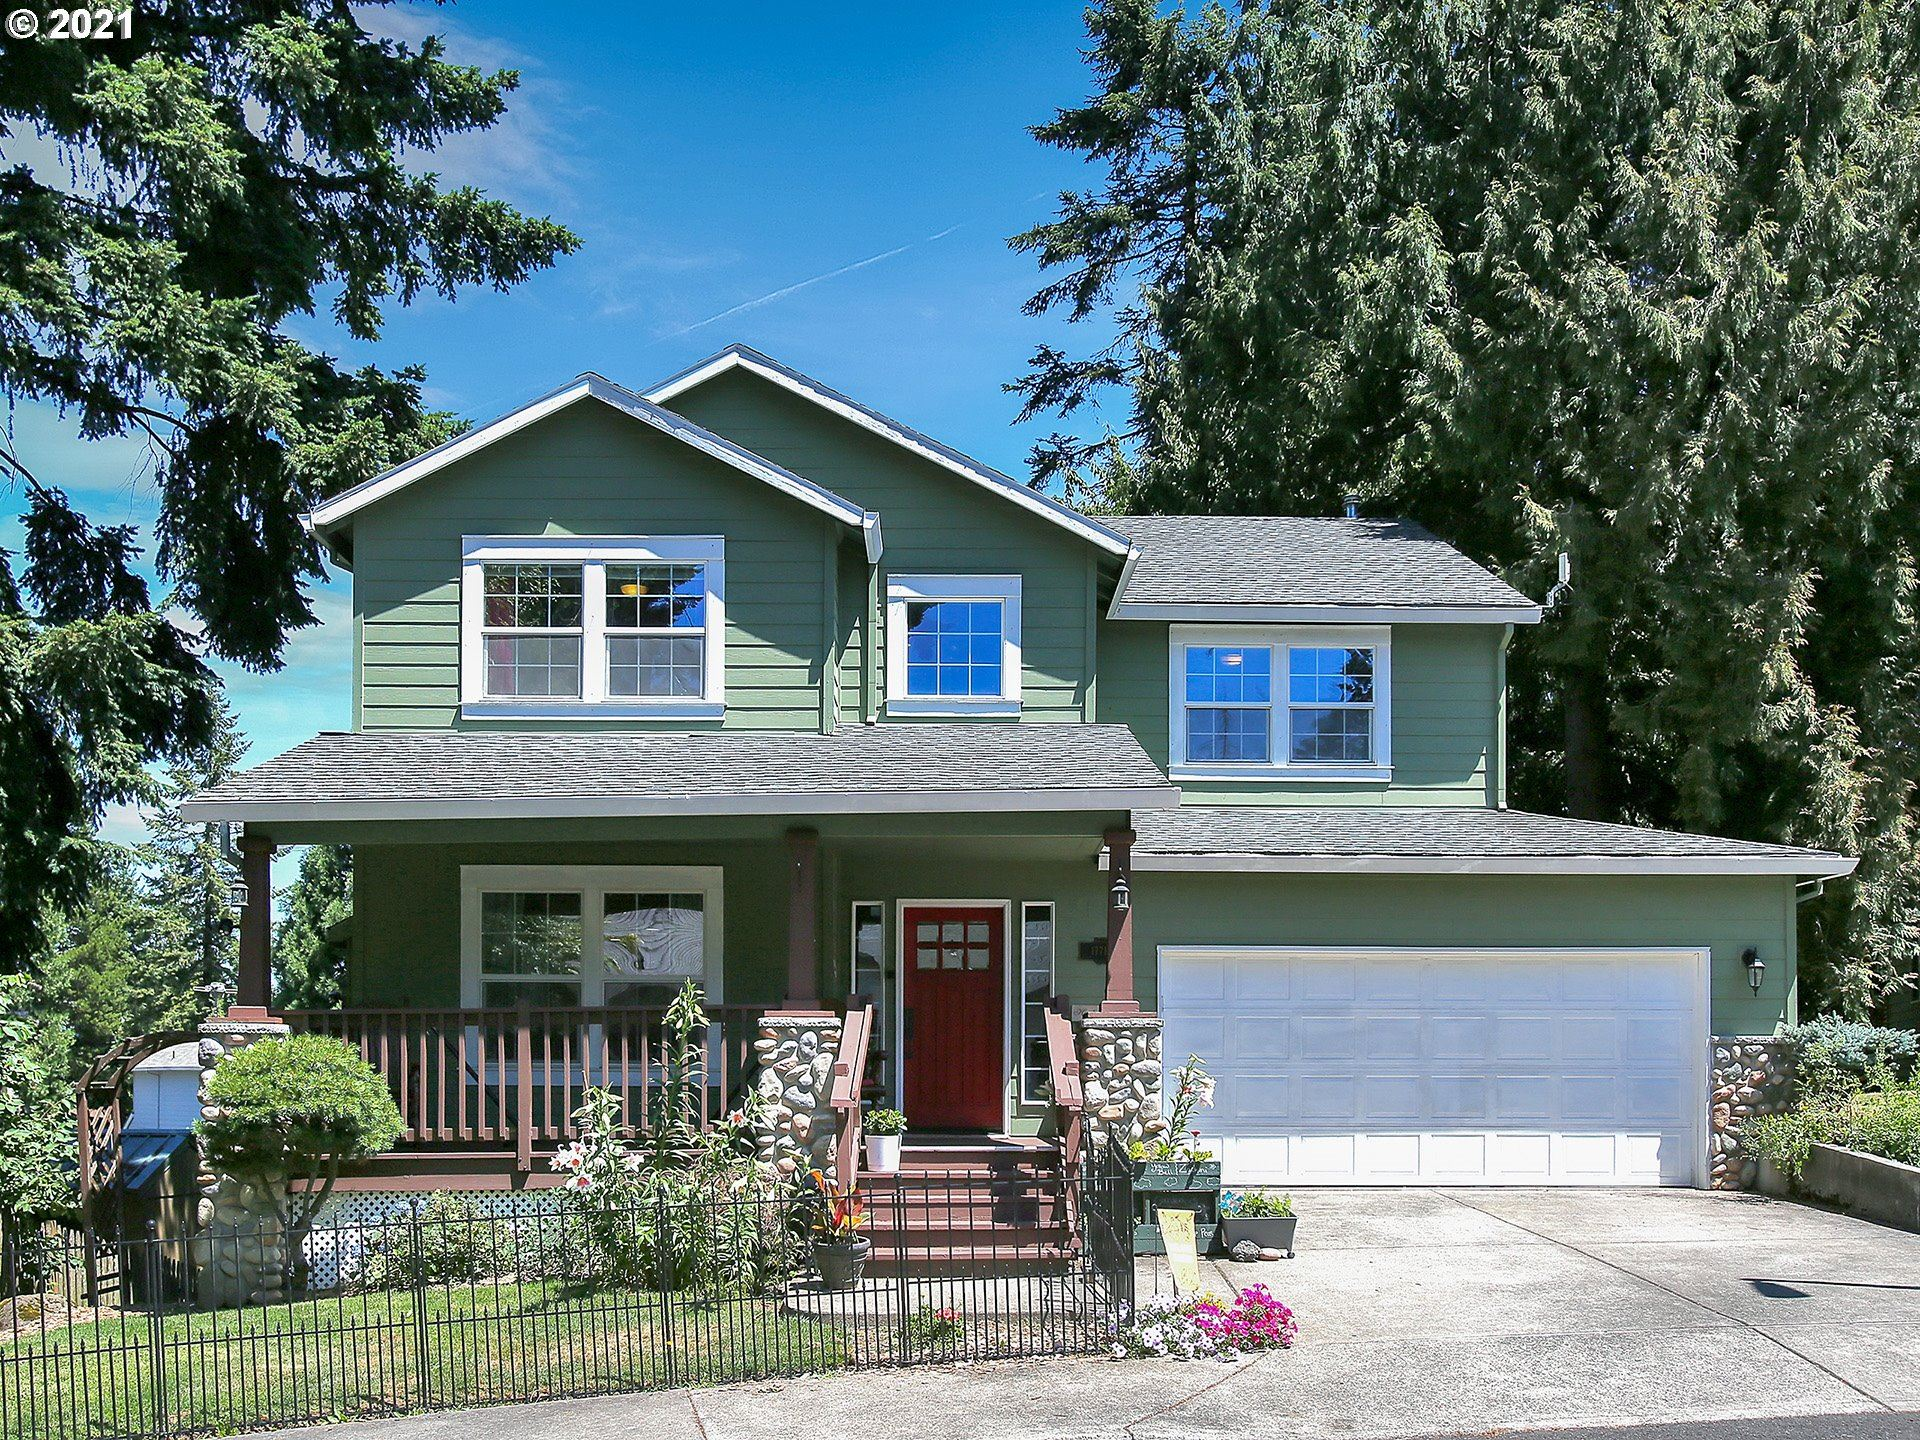 17714 LOUNDREE DR, Sandy, OR 97055 - MLS#: 21060869